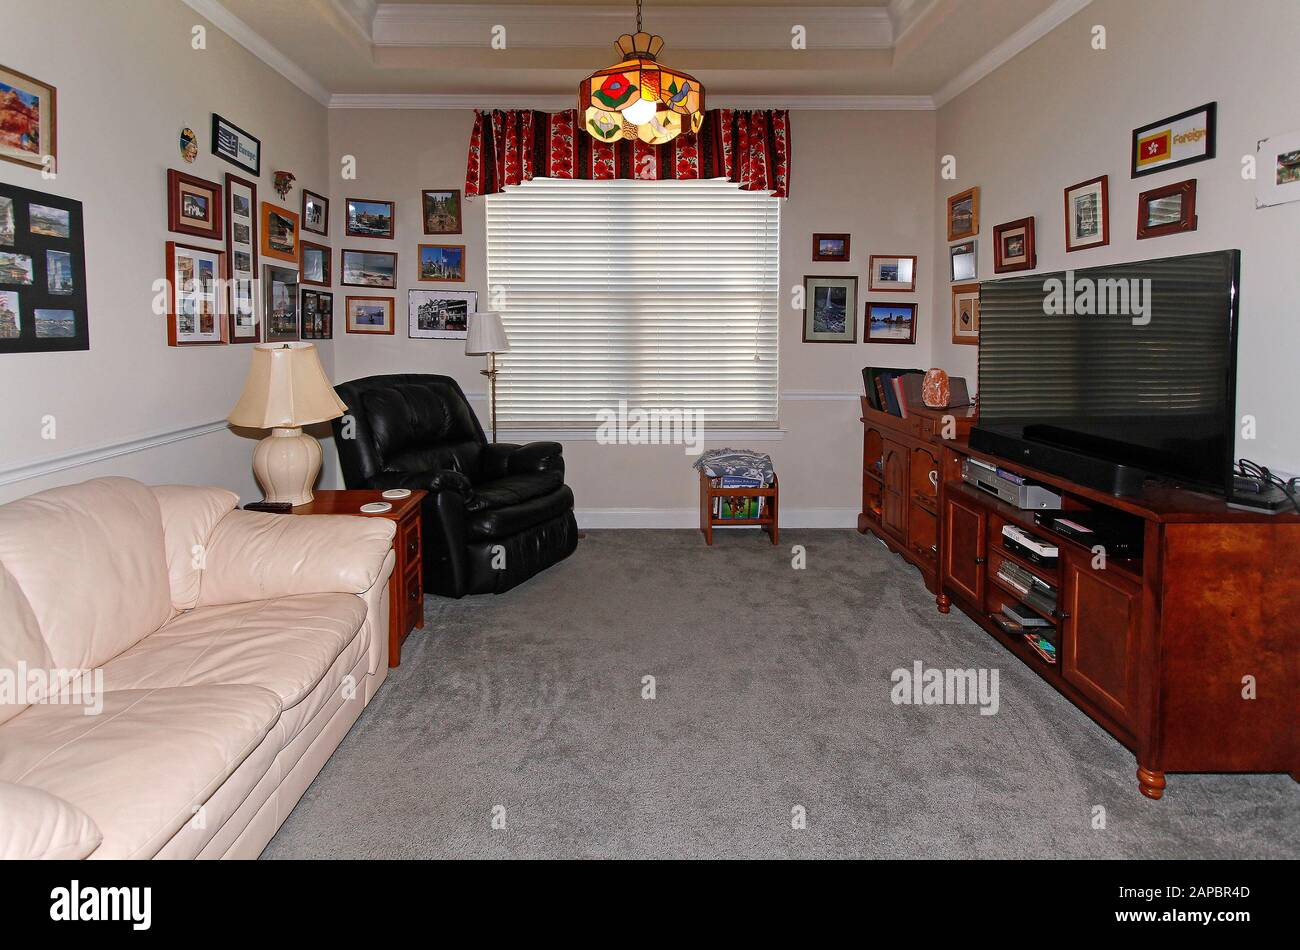 den, TV room, house, stained glass chandelier, leather furniture, sofa, recliner, many photos, cozy, large window, shades closed, wood cabinets, coffe Stock Photo